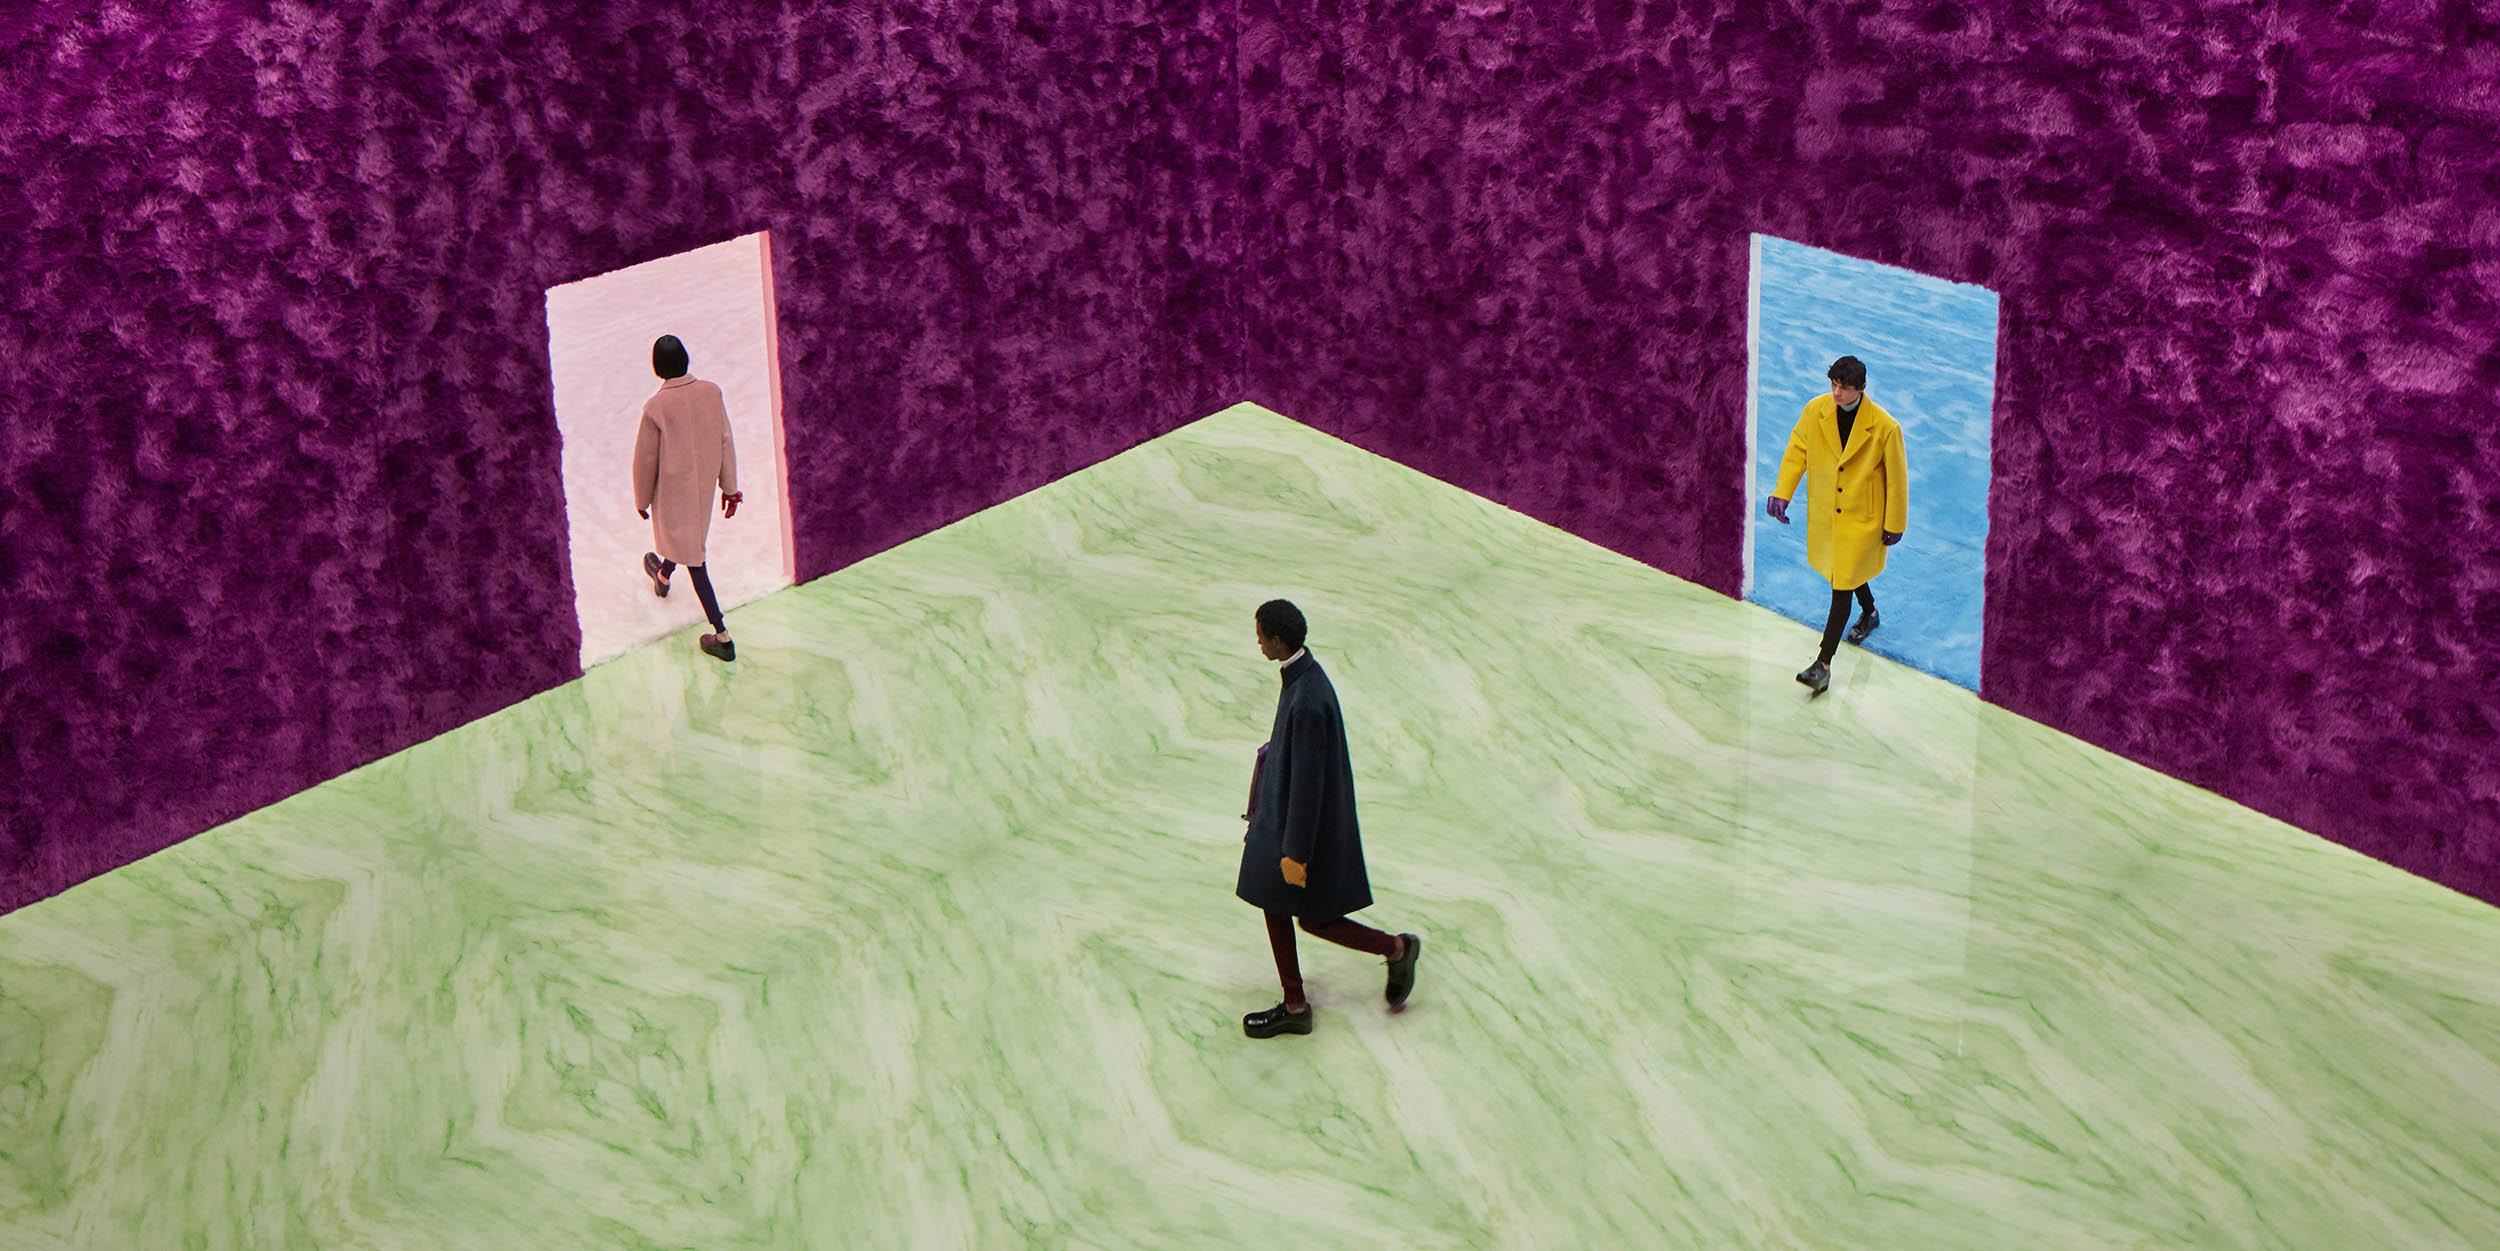 Rooms of one's own: Inside Prada's textural menswear collection